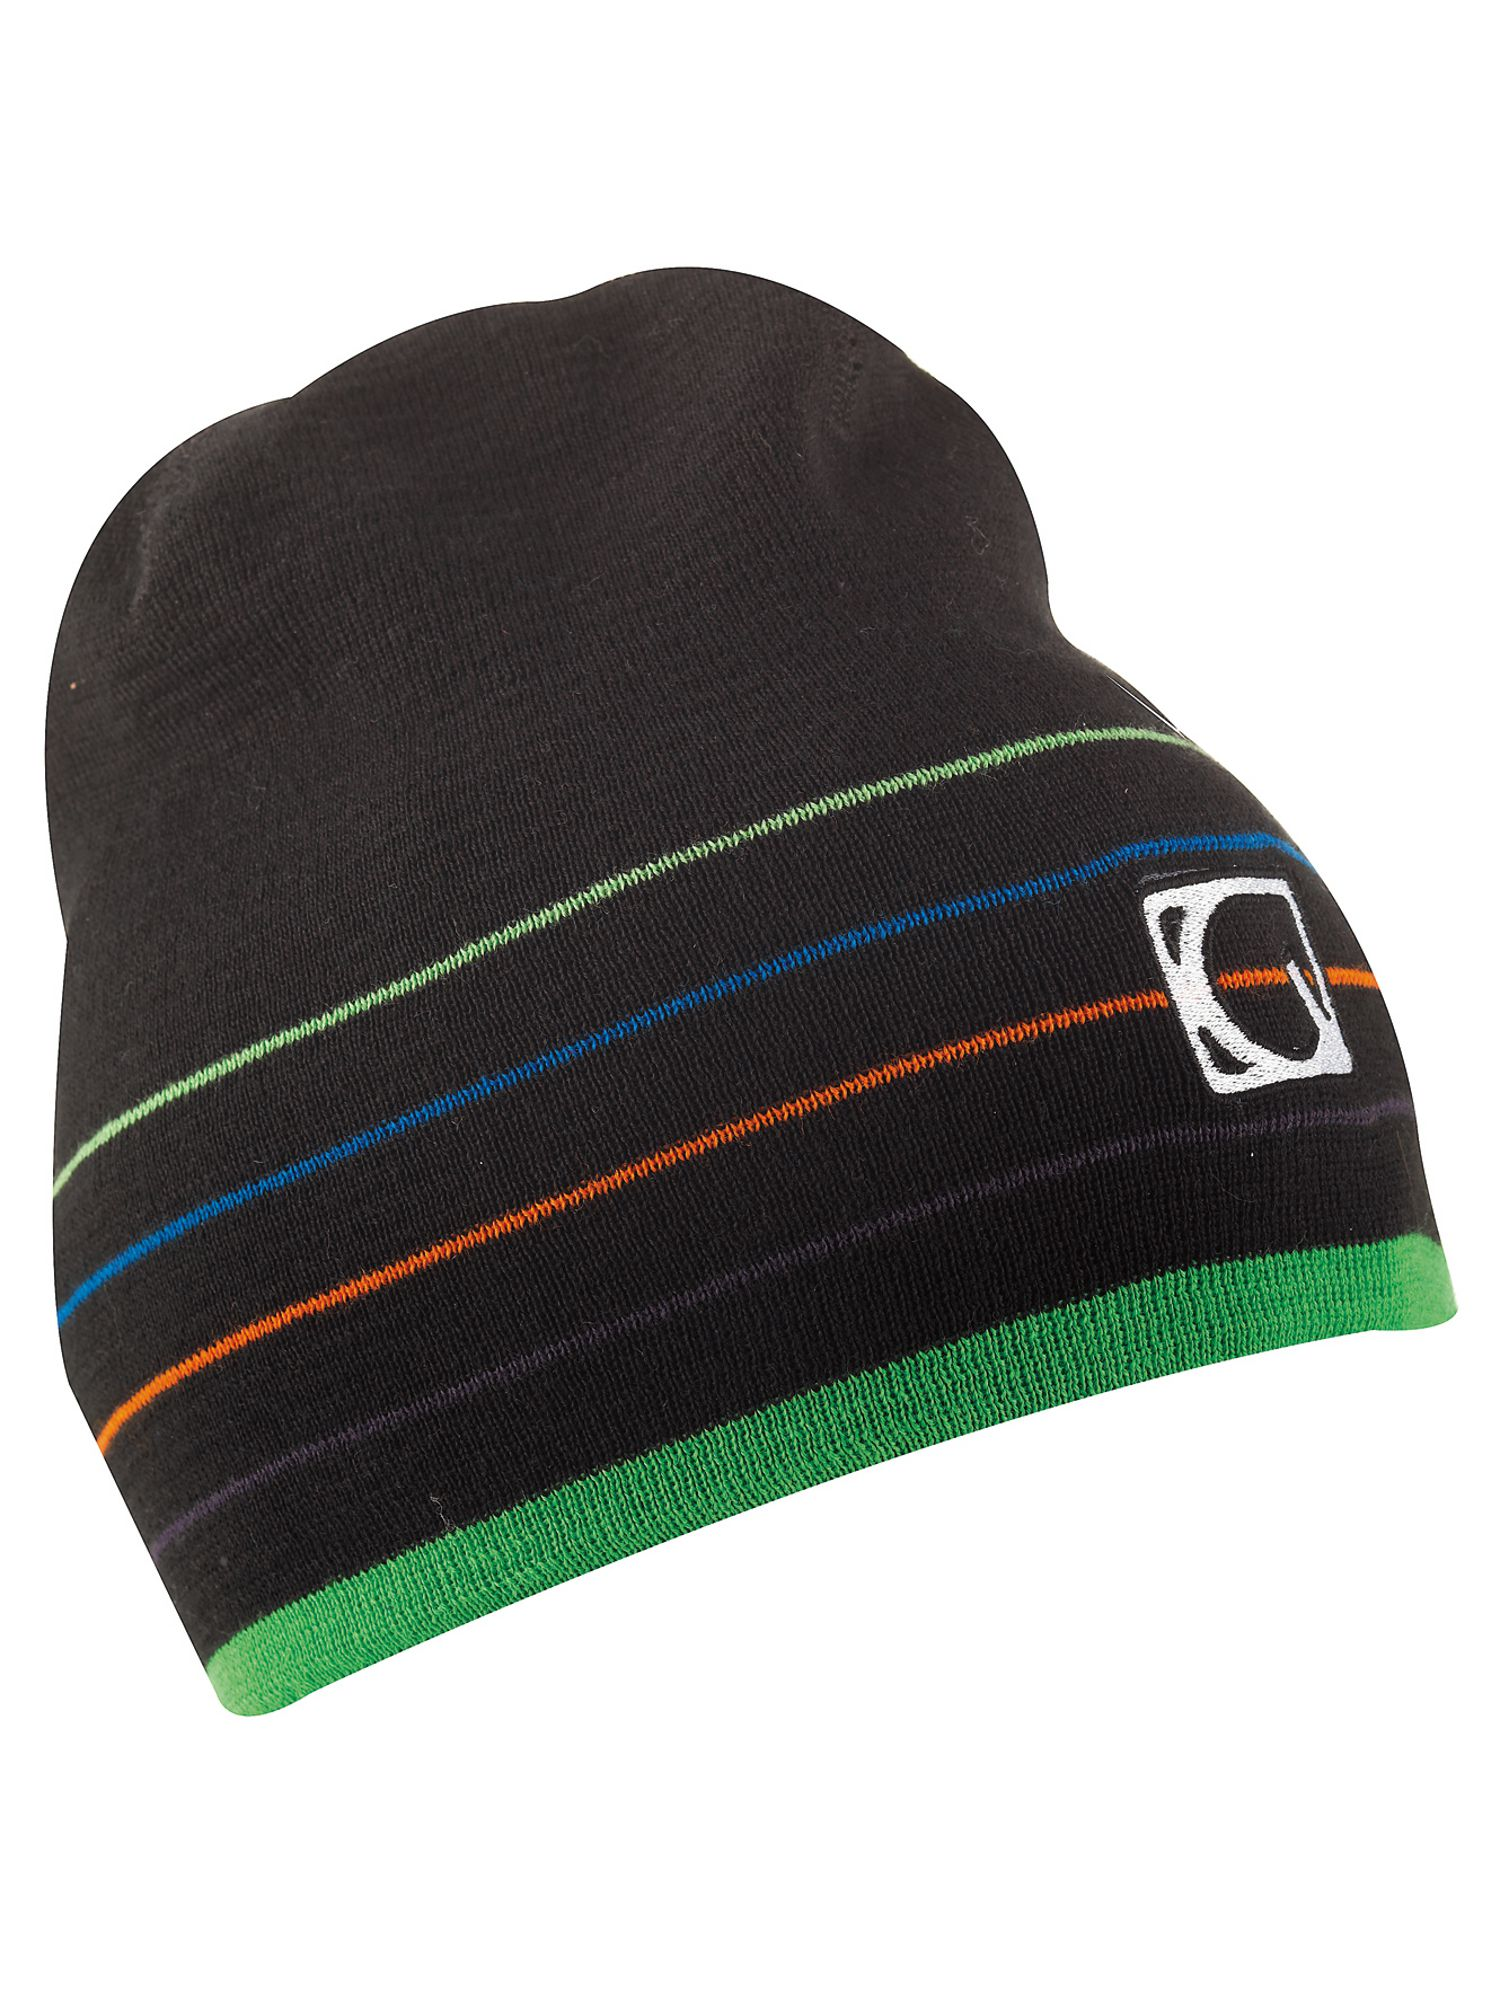 Stanton knitted hat